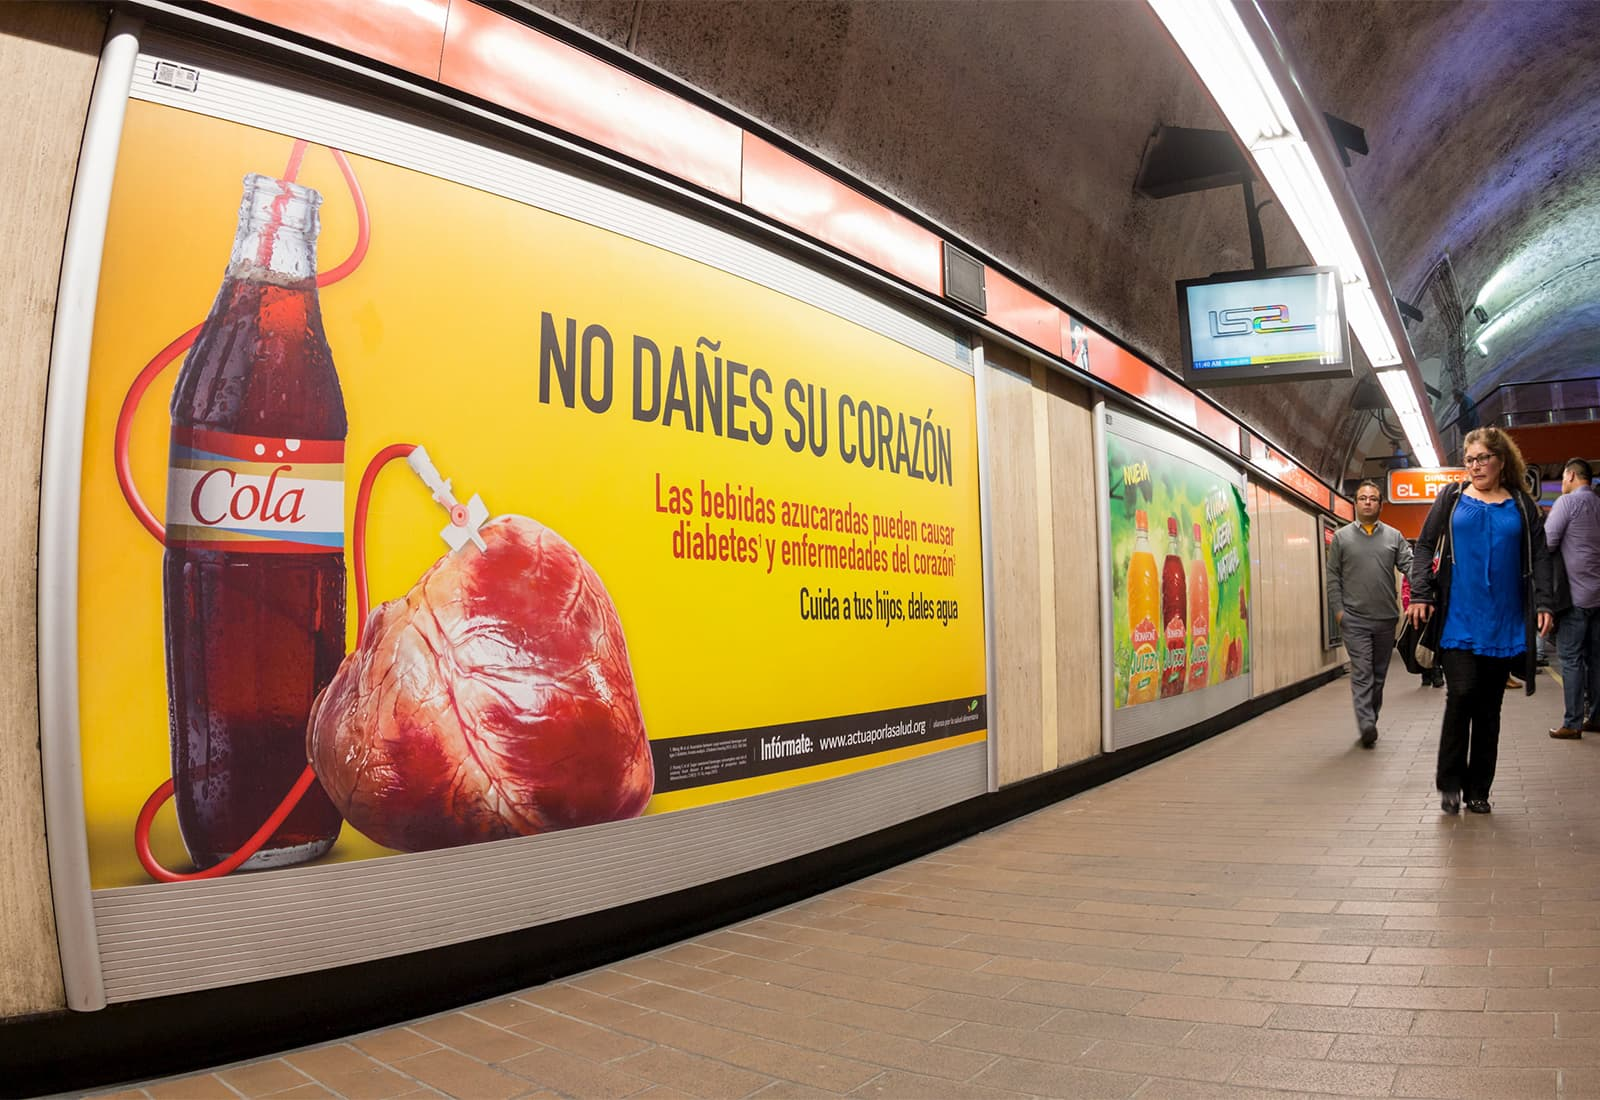 Billboards in Mexico highlighting the health risks of sugary beverages as part of an obesity prevention campaign led by local partners.